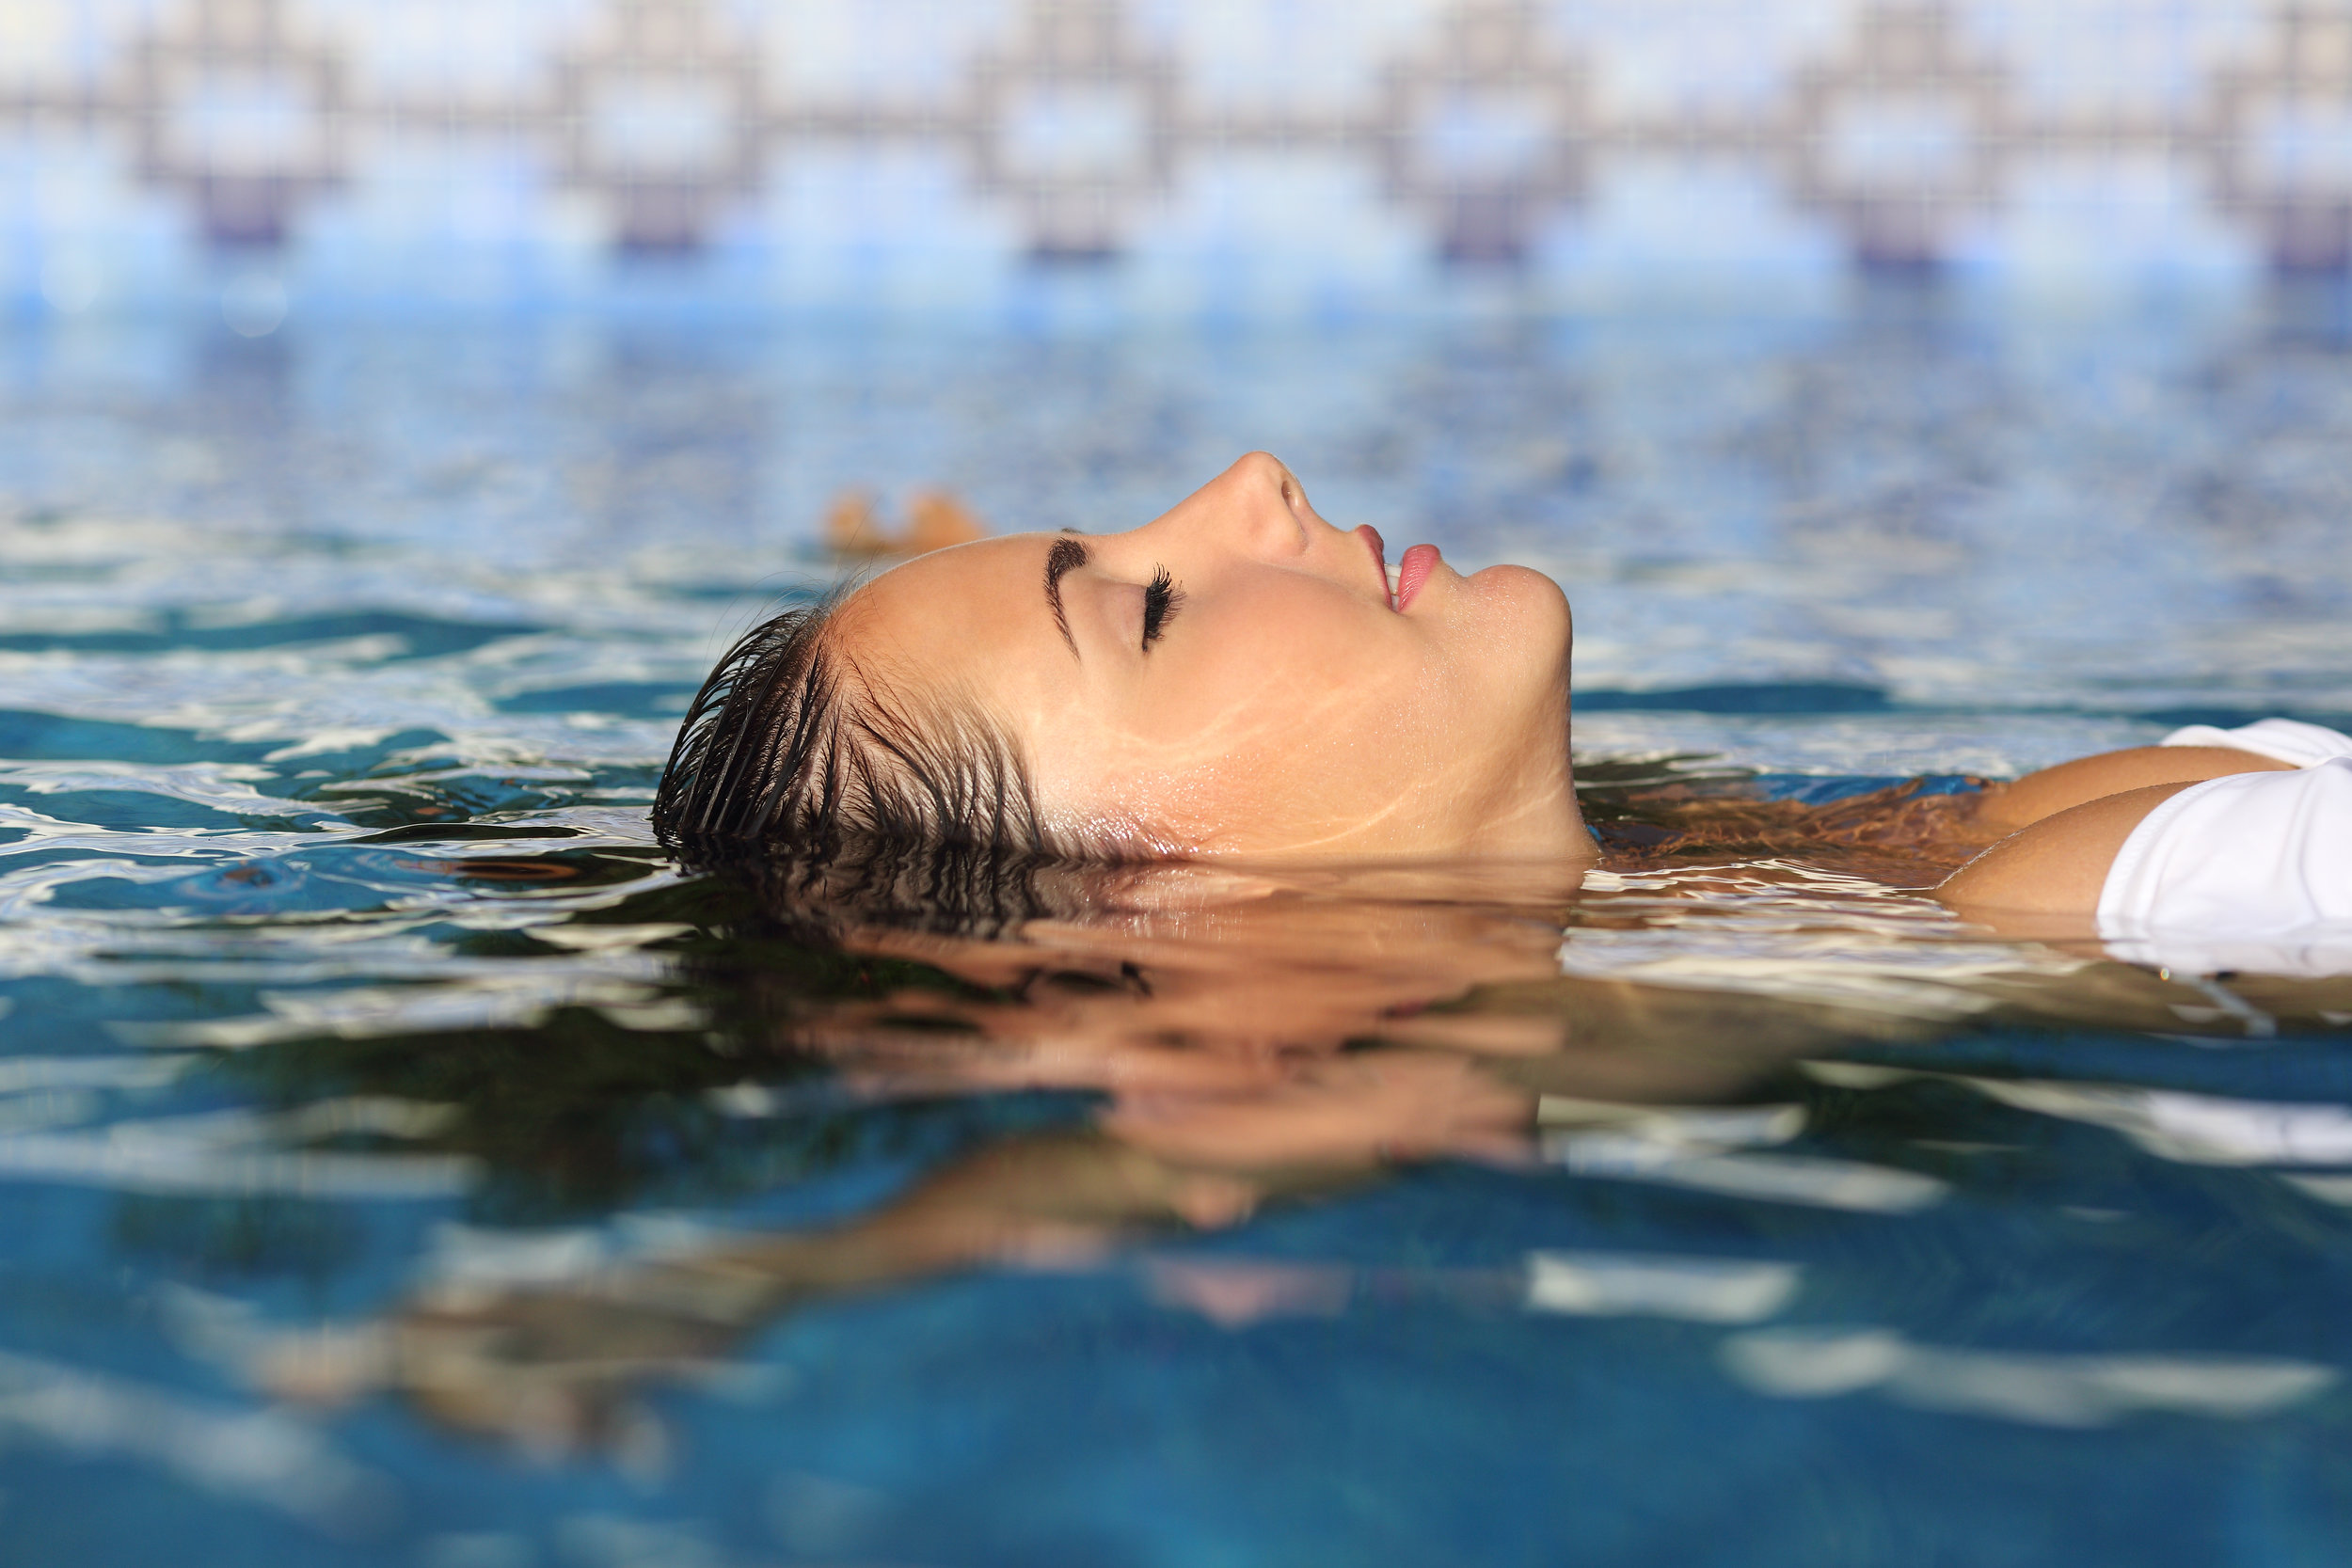 Profile of a beauty relaxed woman face floating in water.jpg